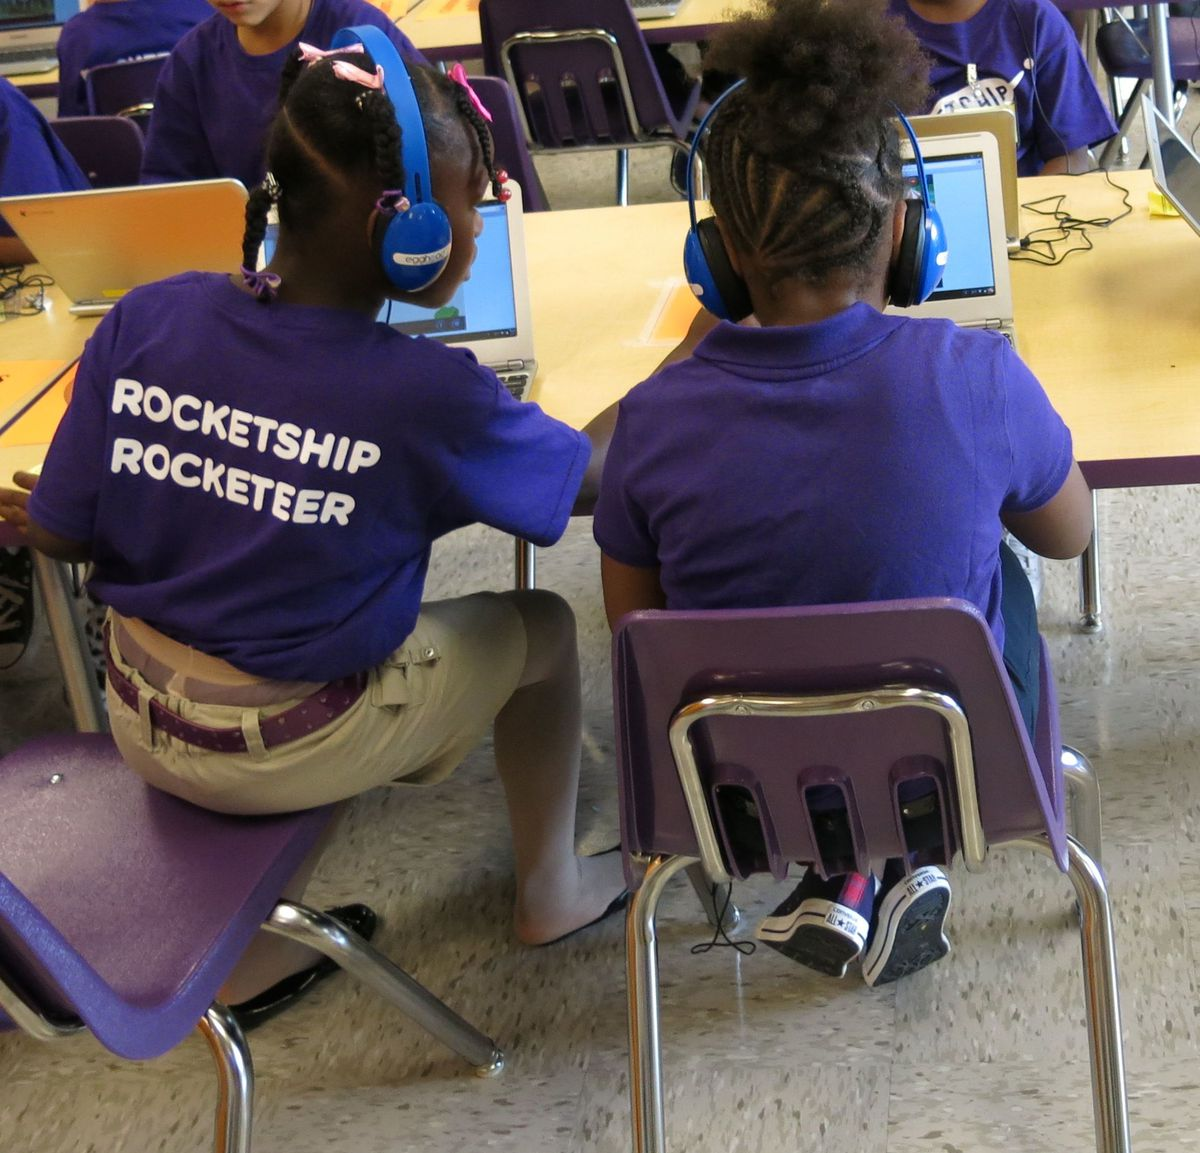 Students help each other in the learning lab at Rocketship Nashville Education.